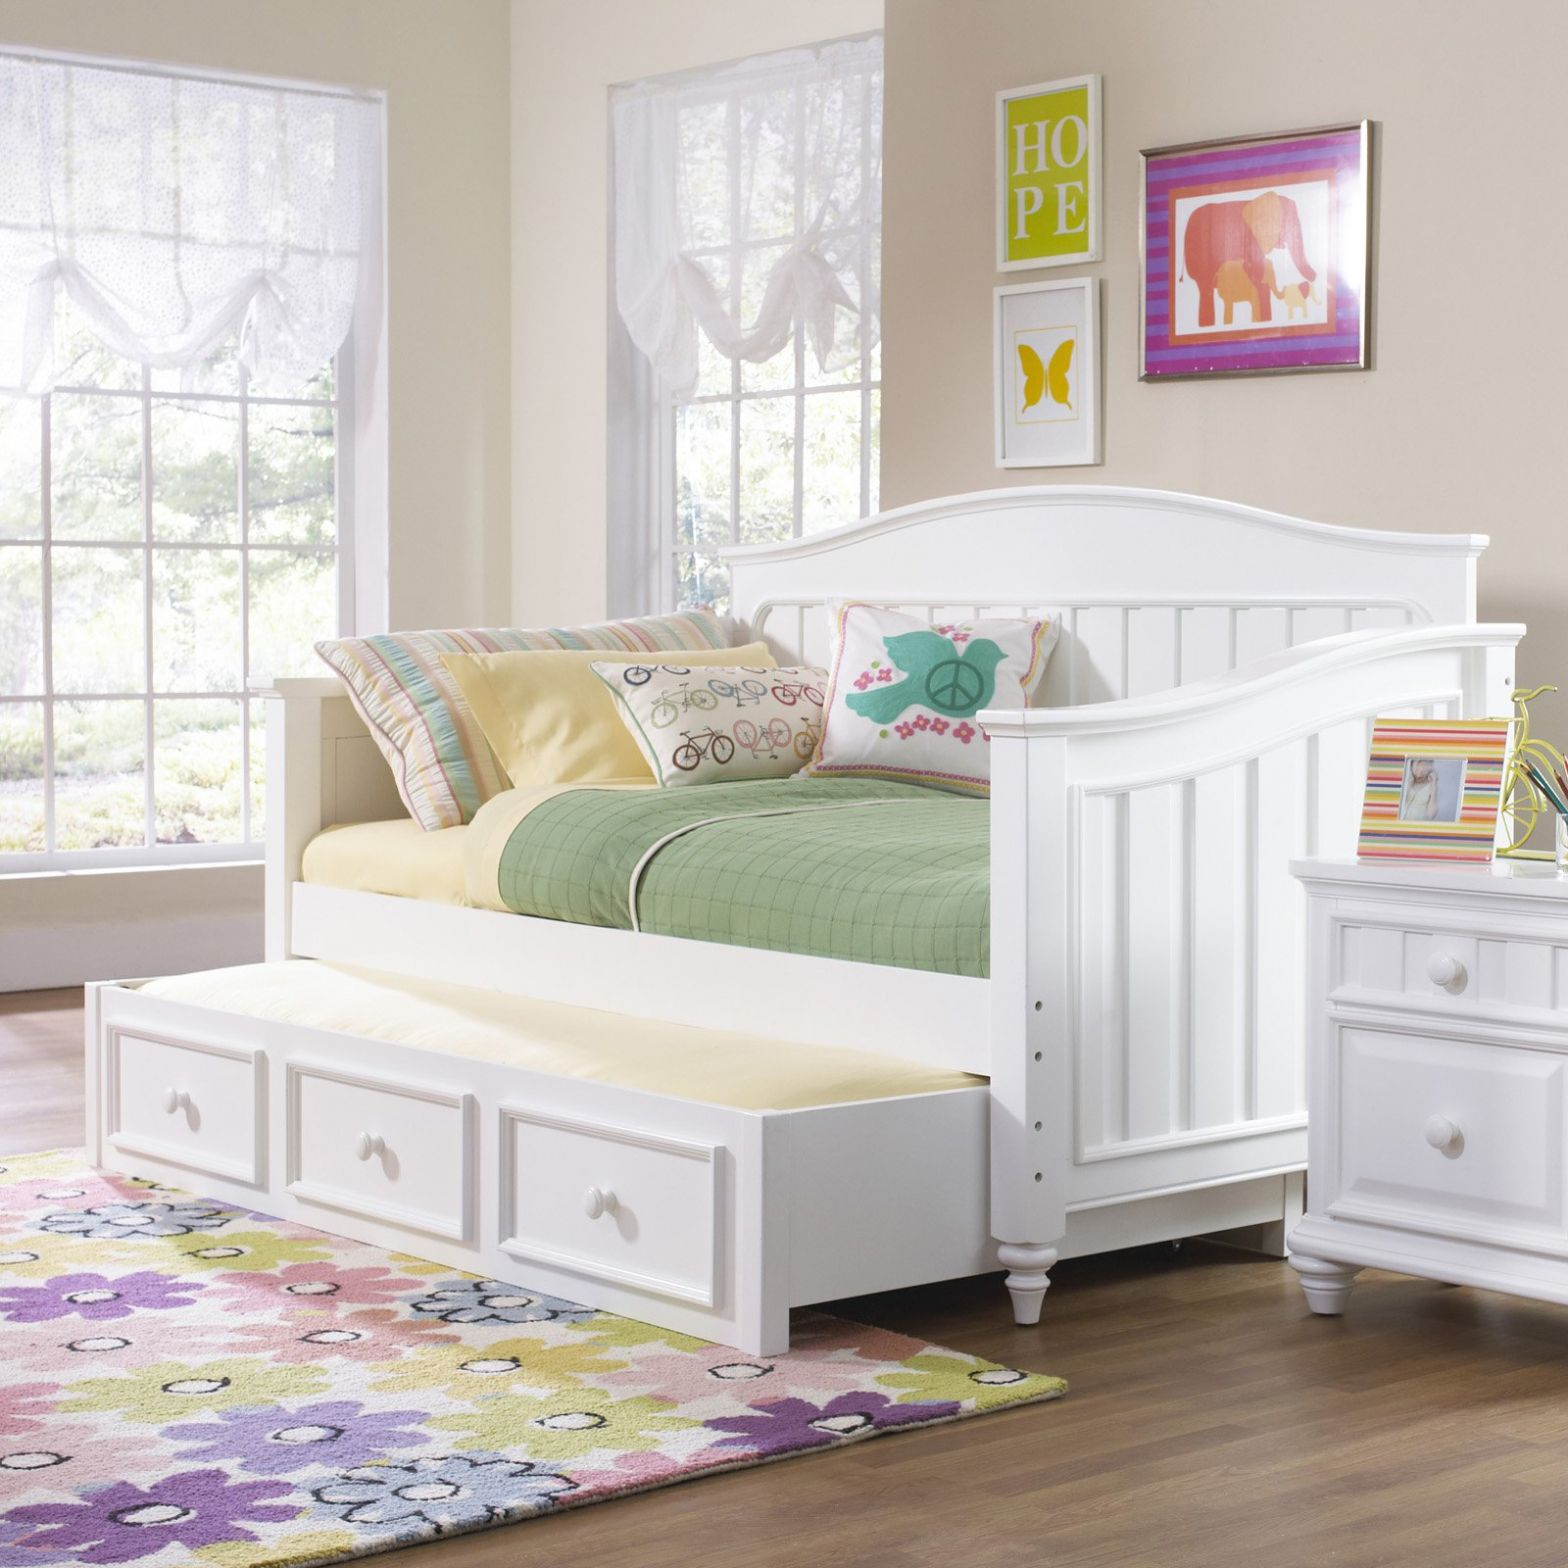 Daybeds Kids Daybed With Trundle Bedroom Winsome White Wood With